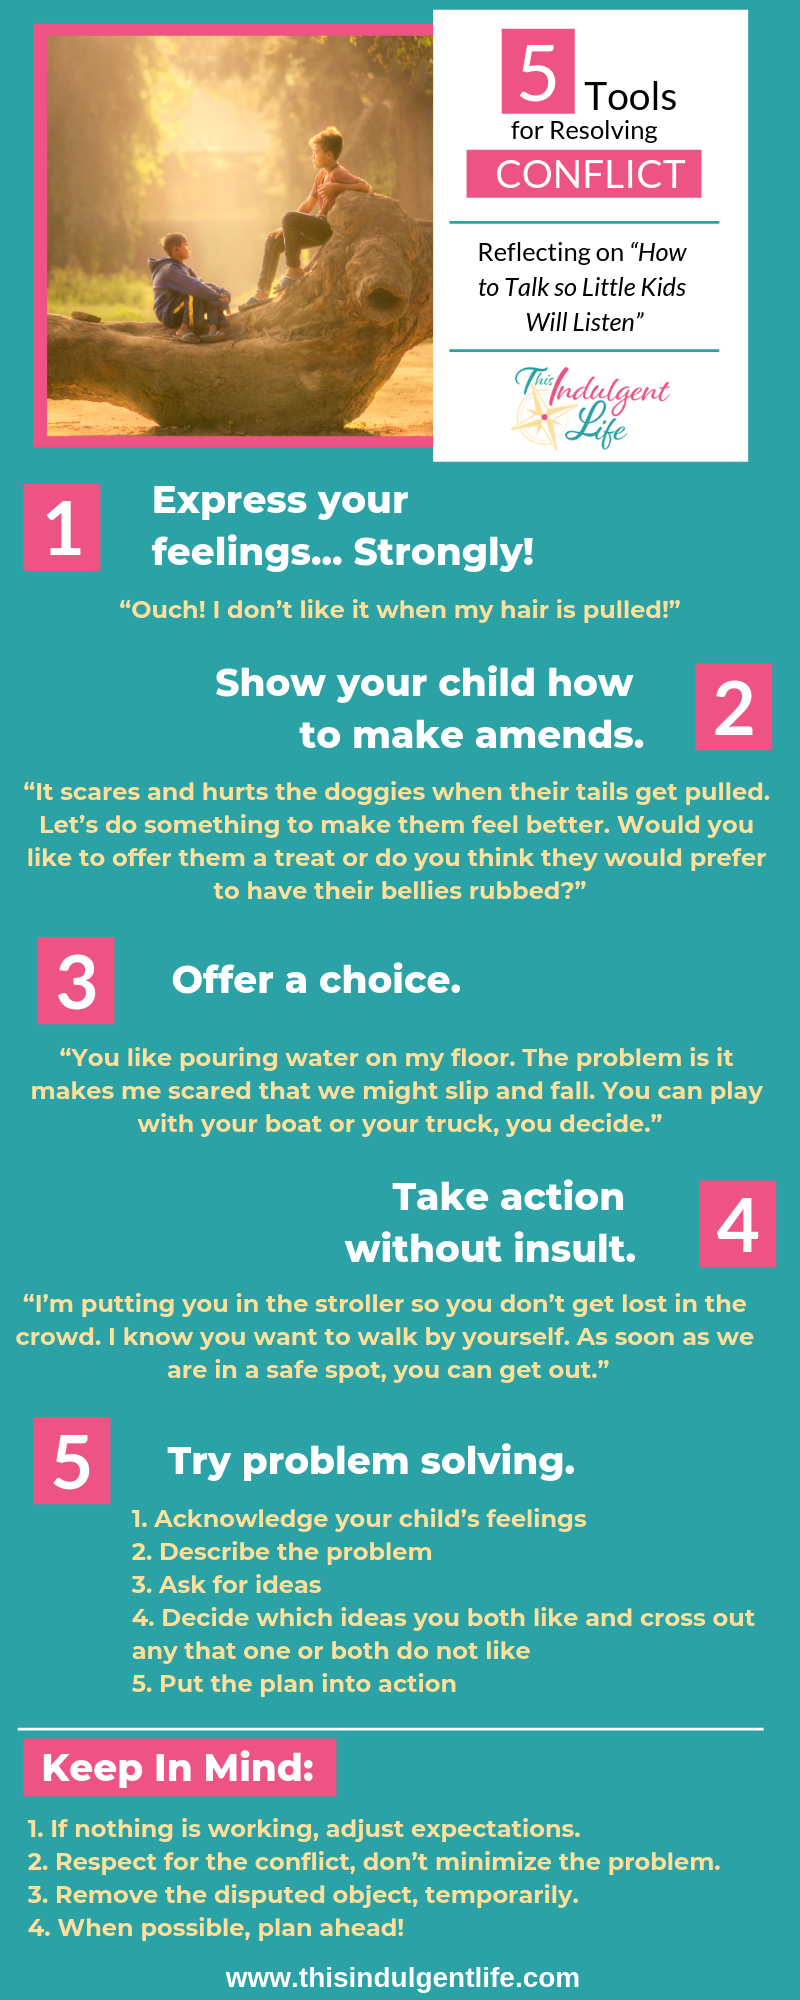 Tools For Resolving Conflict With Children Infographic | This Indulgent Life | Use these 5 tools to help you navigate power struggles with your kids. Stop yelling, bribing, and punishing to get your child to do what you want. | #toddlertantrums #toddlerbehavior #childbehavior #childraising #raisingchildren #thisindulgentlife #parentinghacks #parentingtips